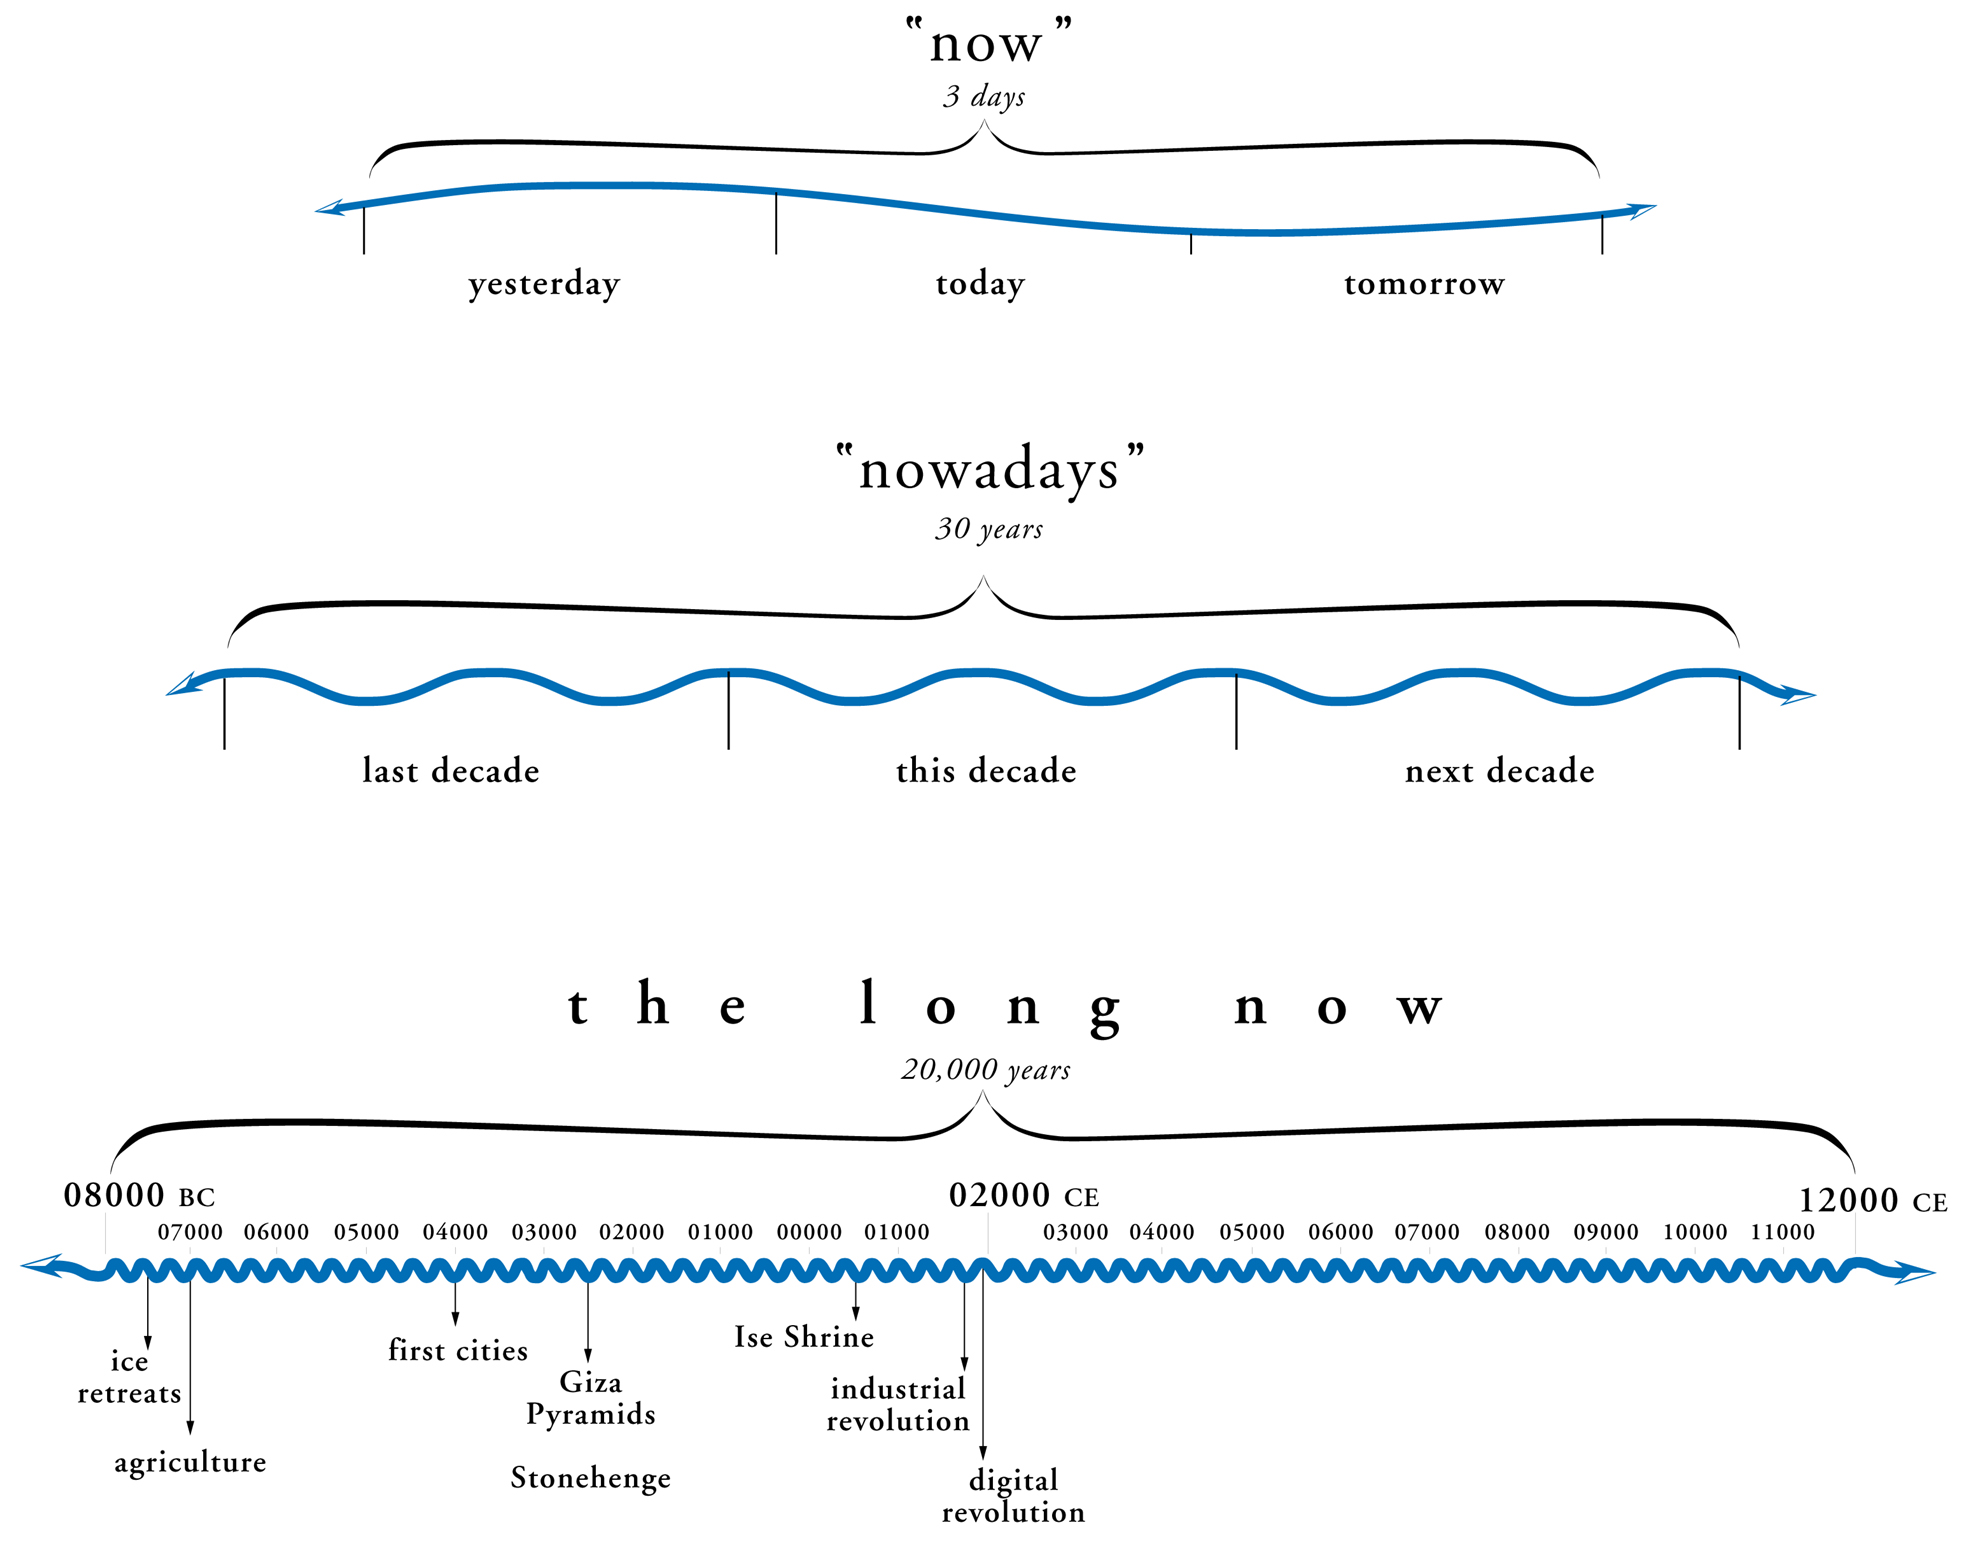 The Long Now